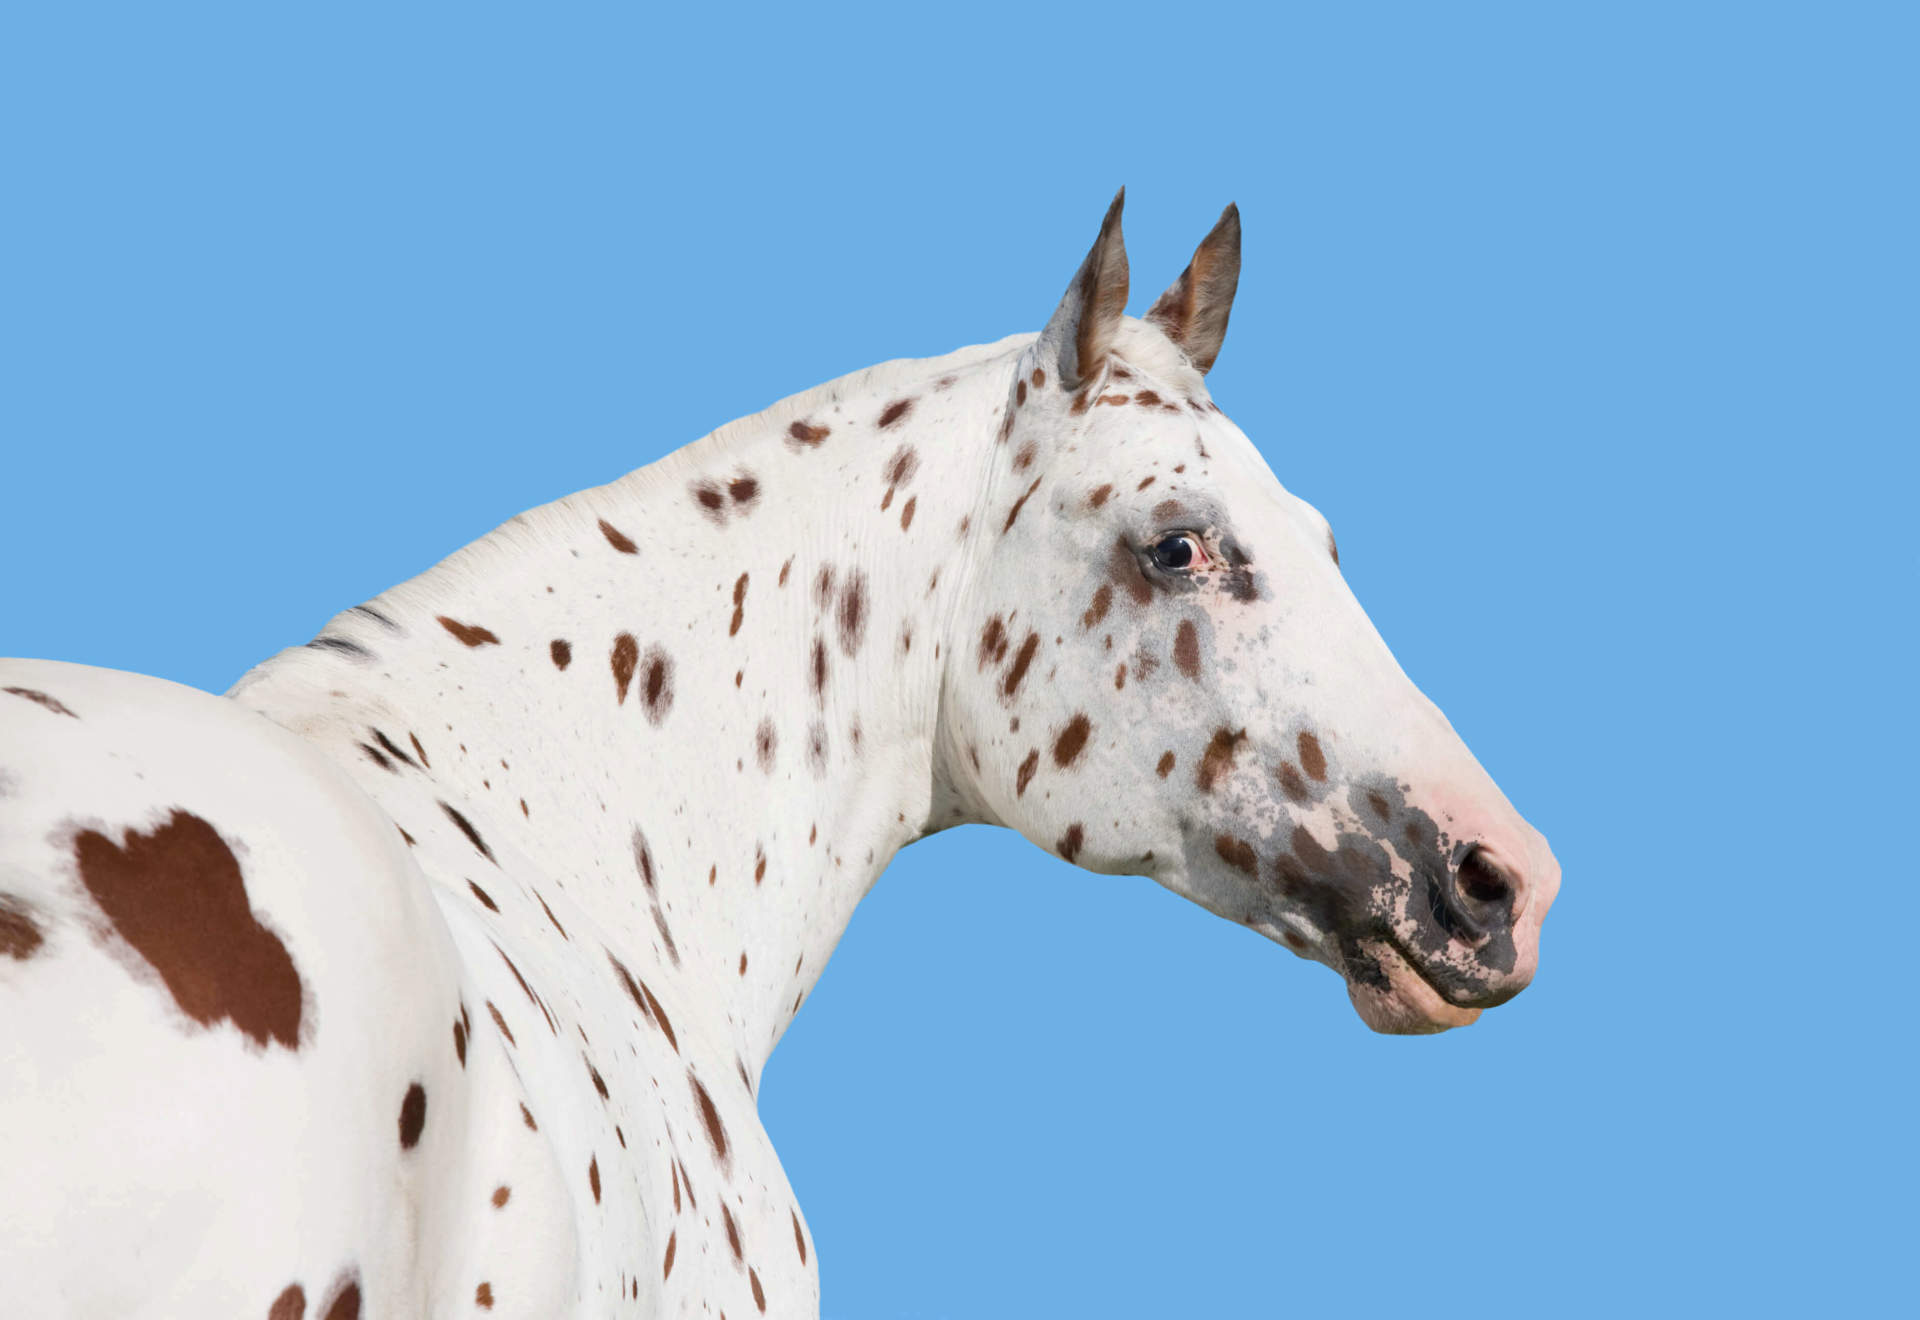 Horse with Low Pigmentation